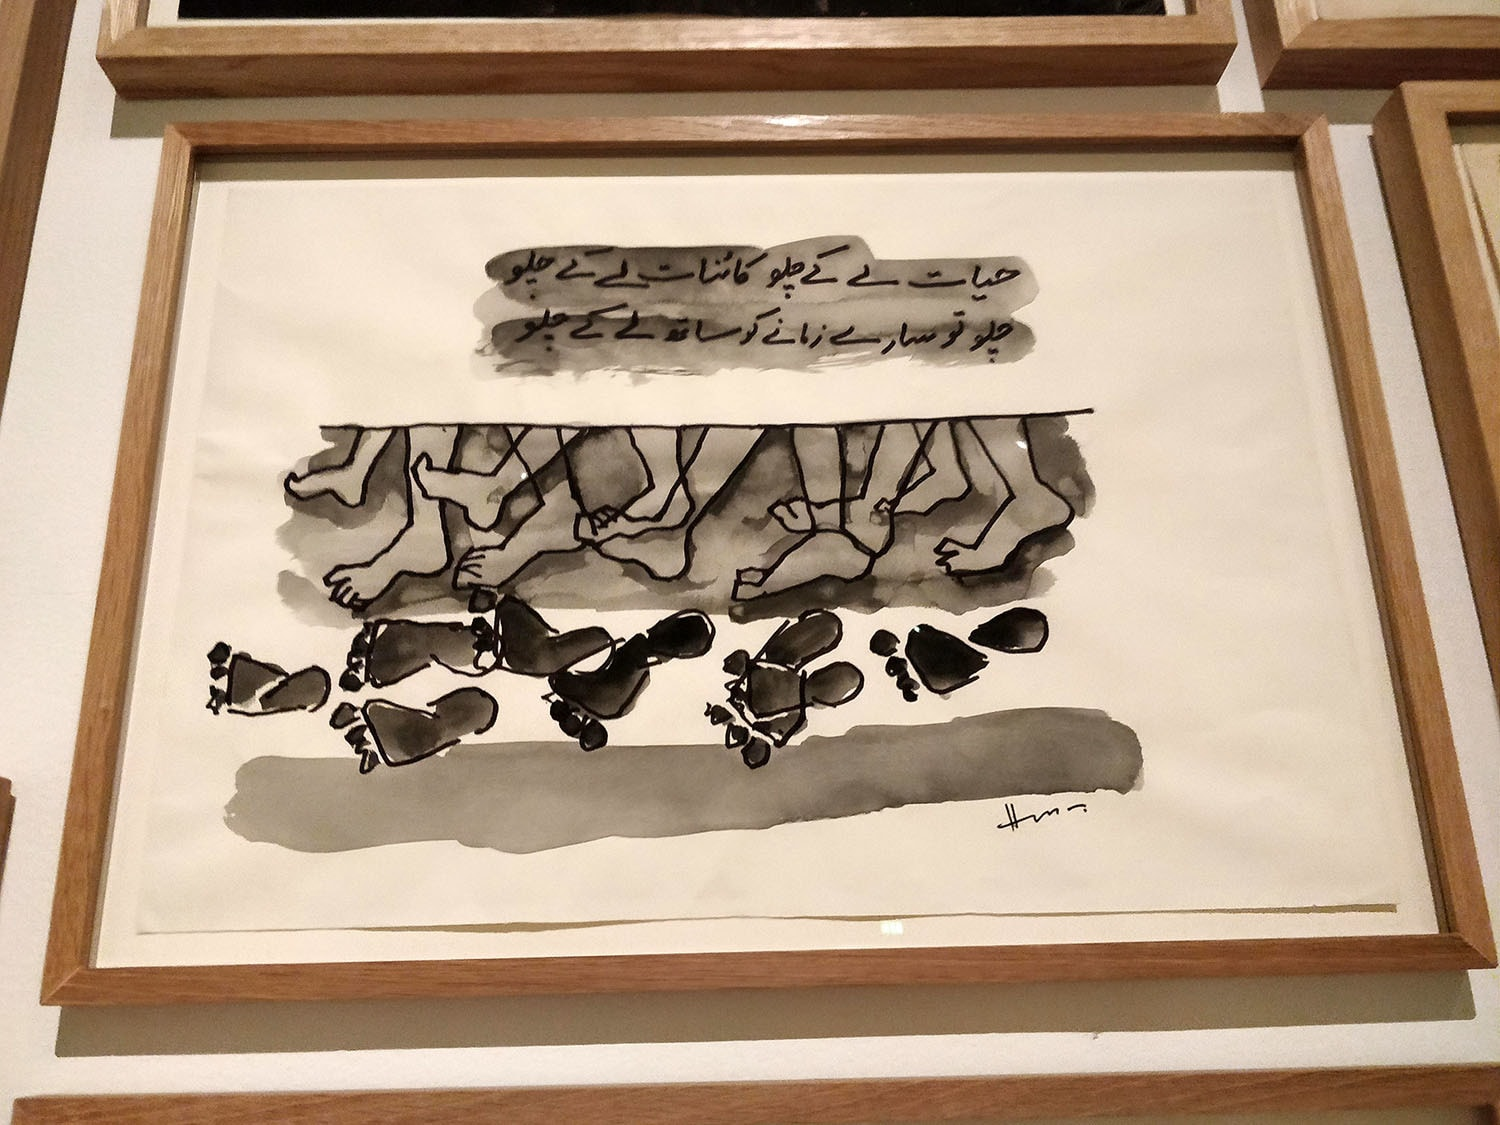 """Hayat le ke chalo — Makhdoom Mohiuddin"". Mathaf"" Arab Museum of Modern Art.—Photo by author"